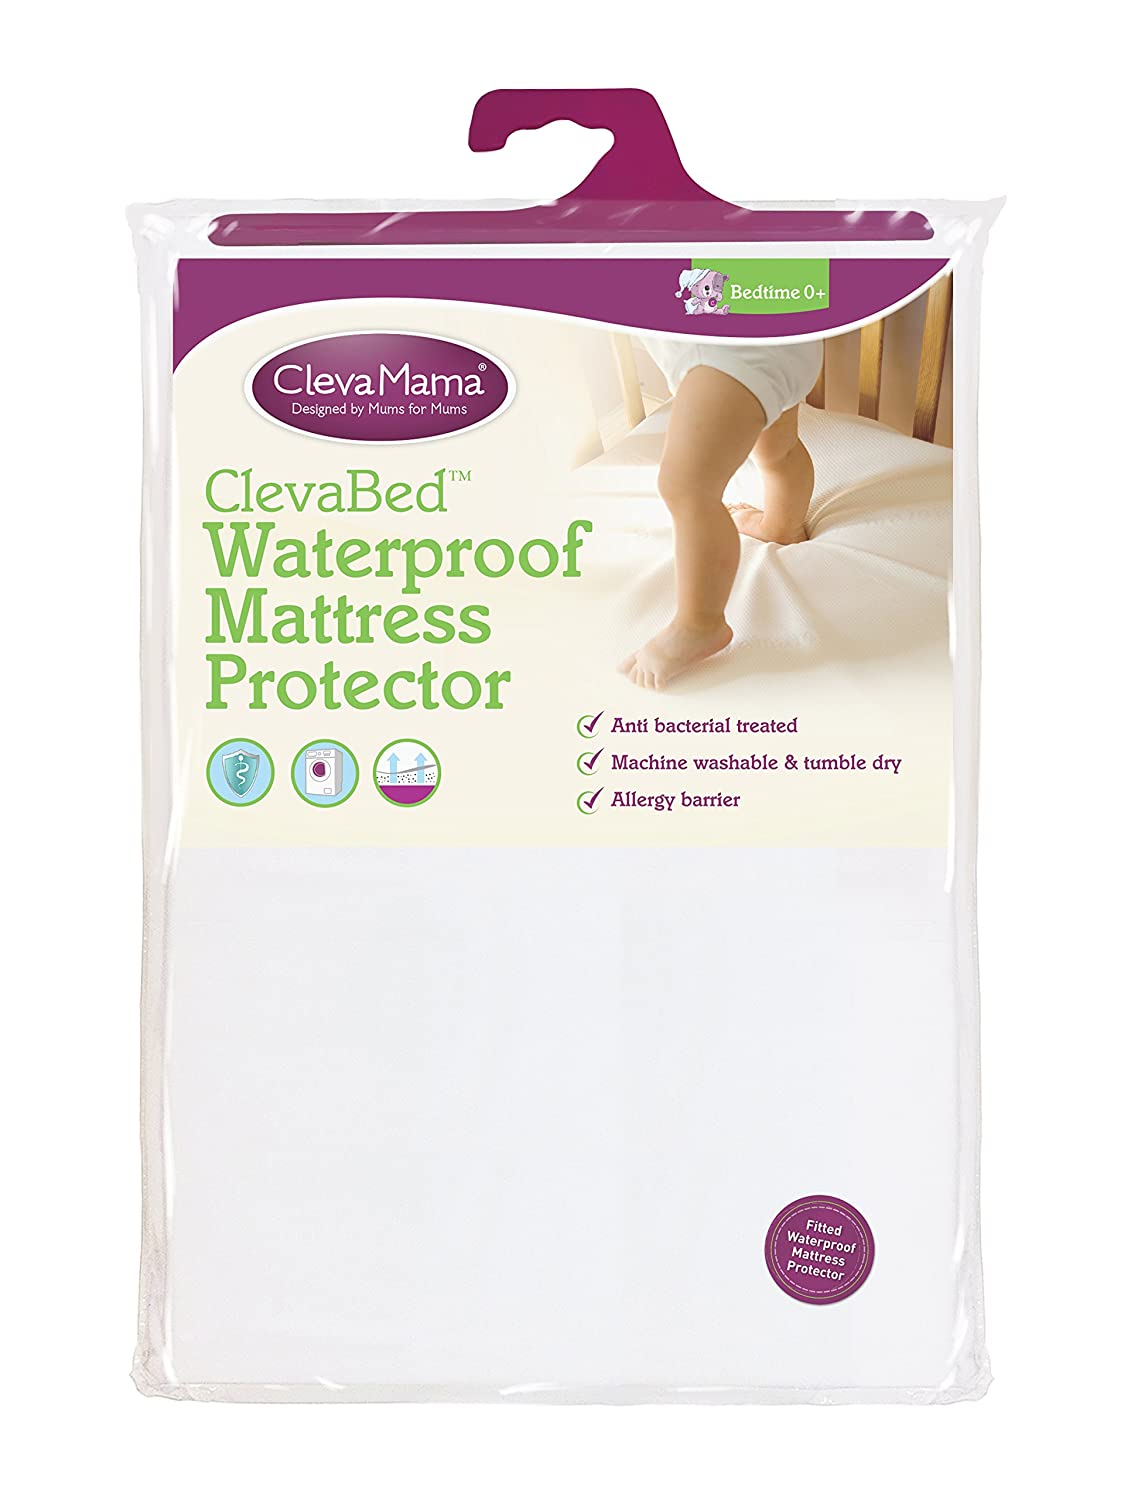 Clevamama ClevaBed CotBed Mattress Protector